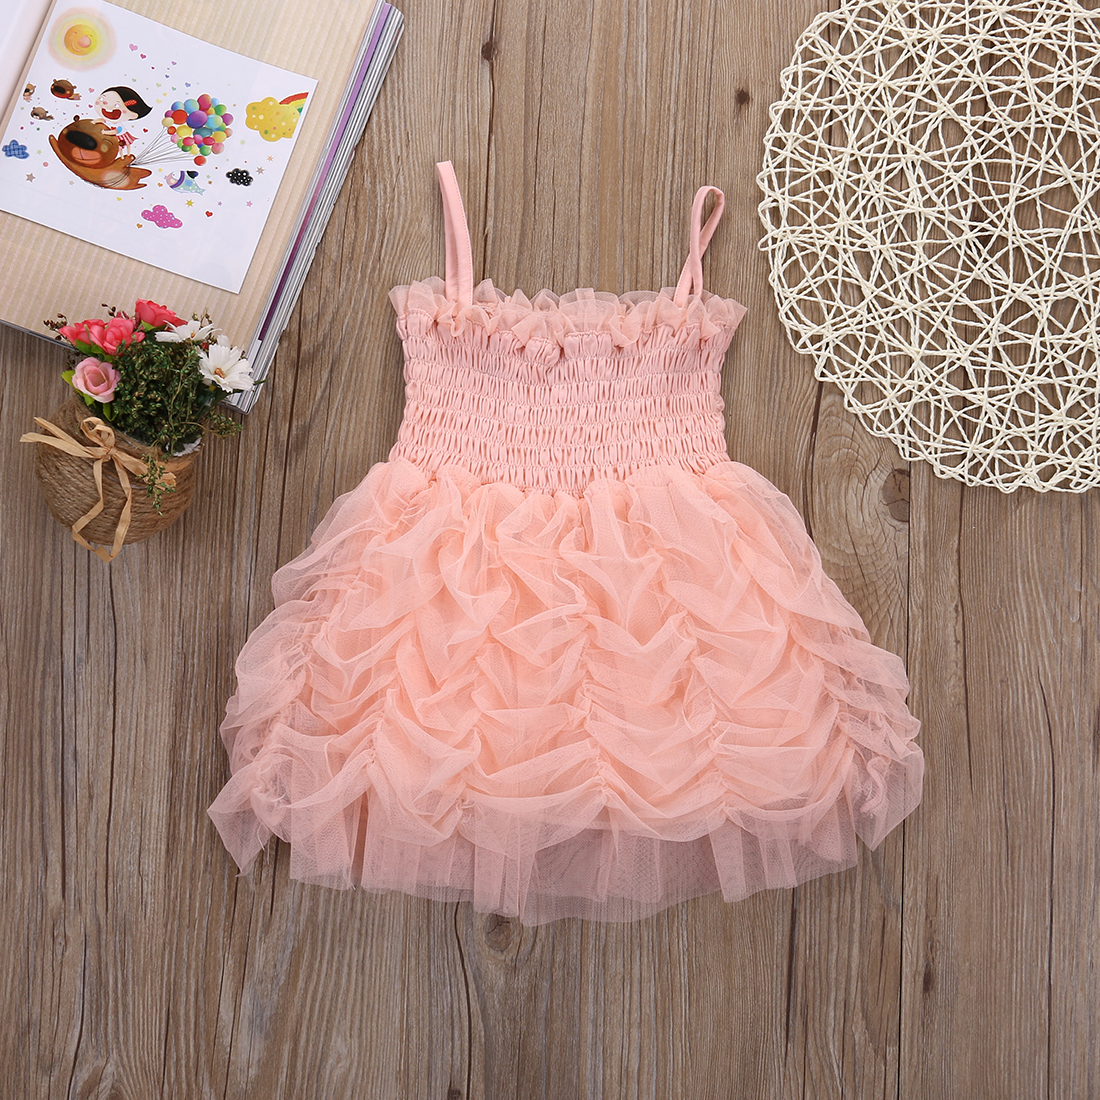 2017 Hot Toddle Girls Clothes Princess Dress Little Girls Summer Dress Vestidos Ruffle Tutu Bubble Party Dress 1-6Y